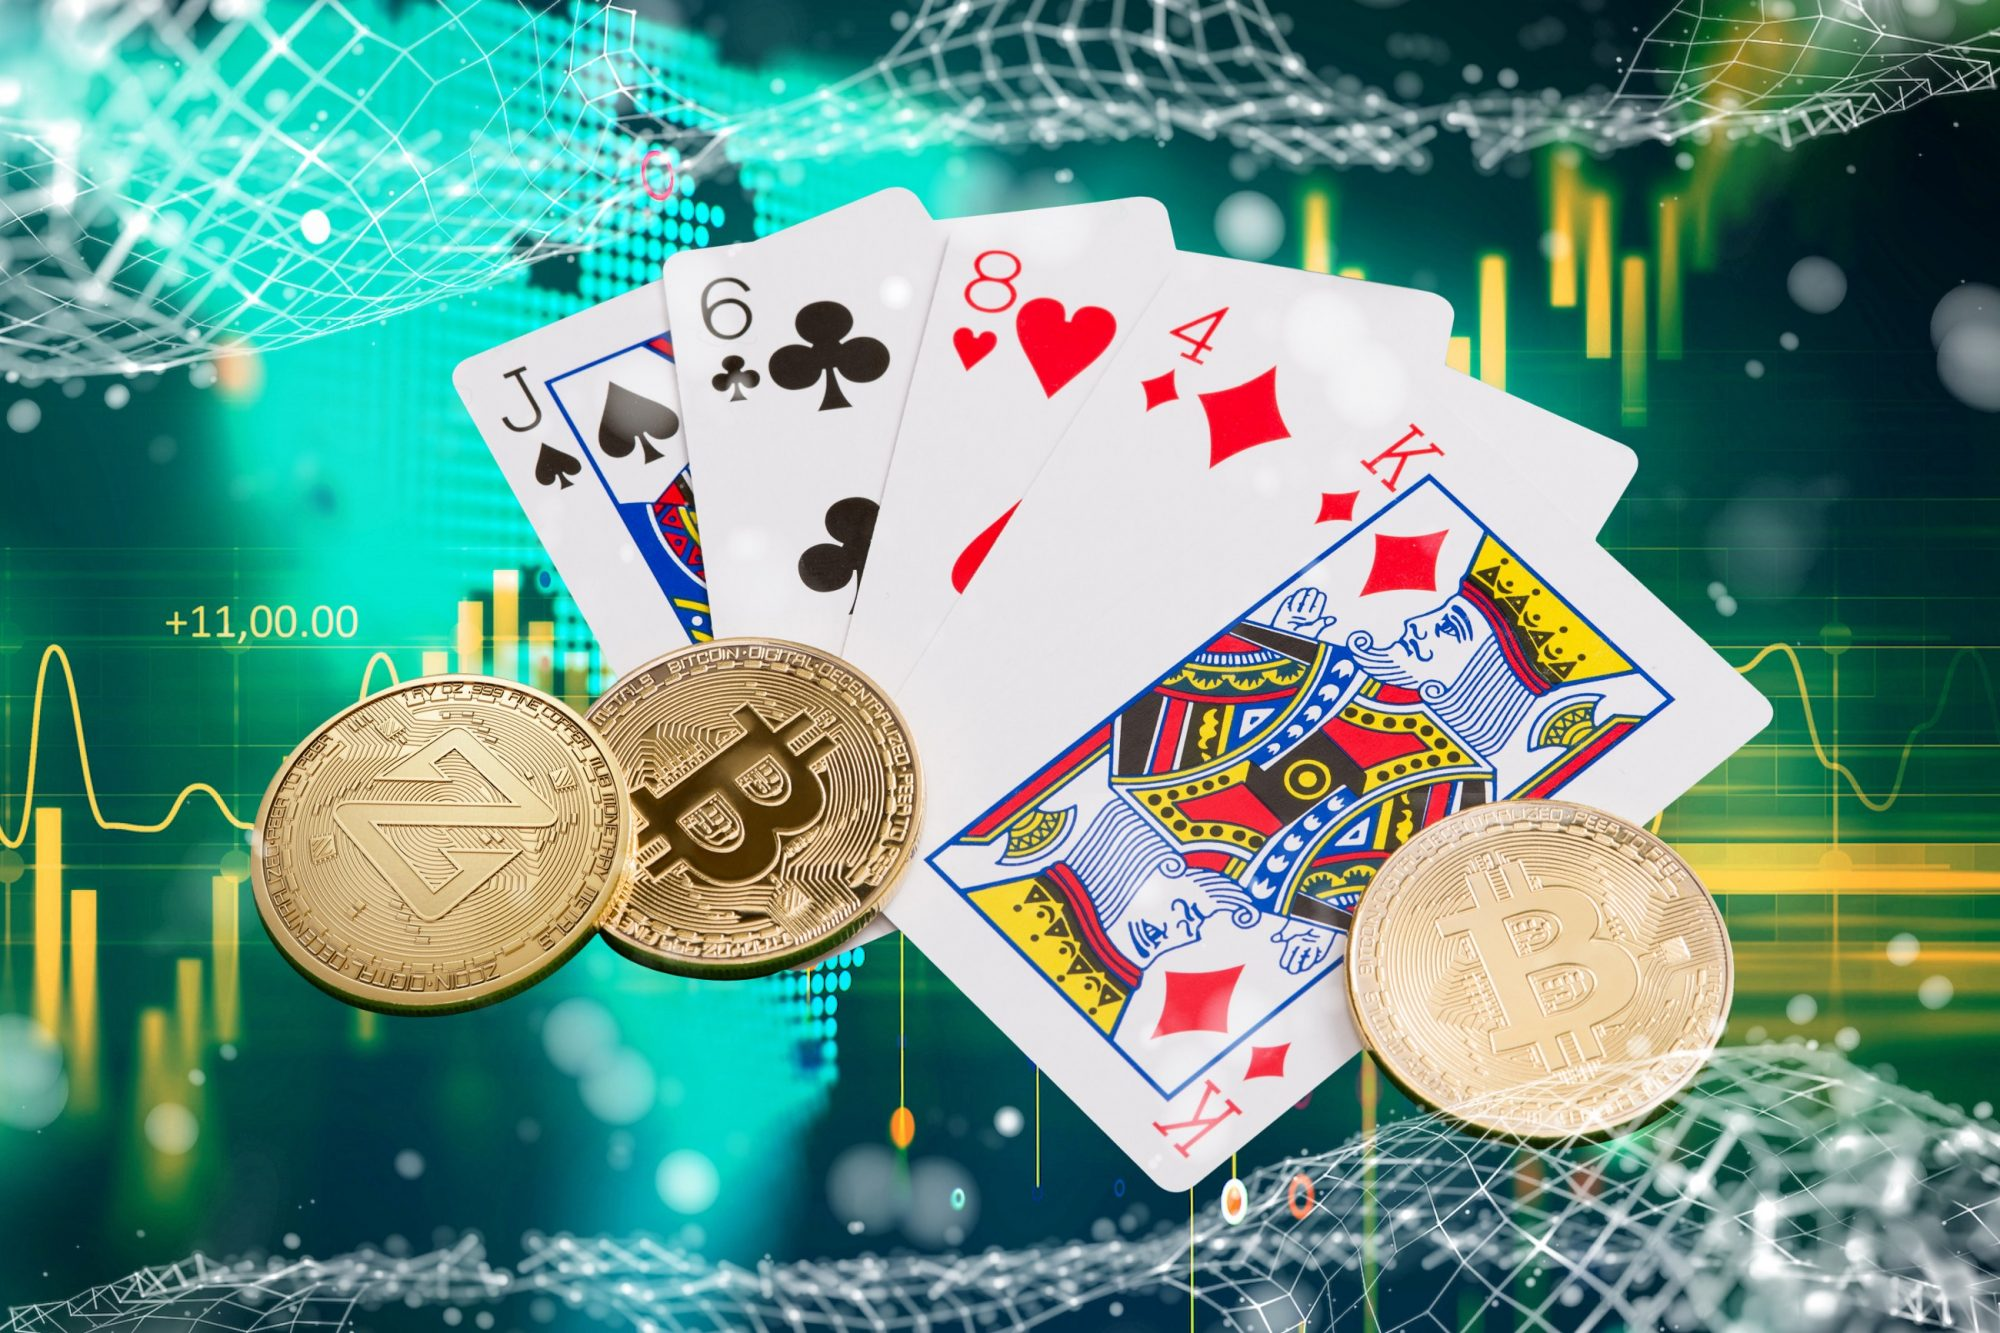 Finest Gambling Sites - Top Betting Sites & Online Casinos